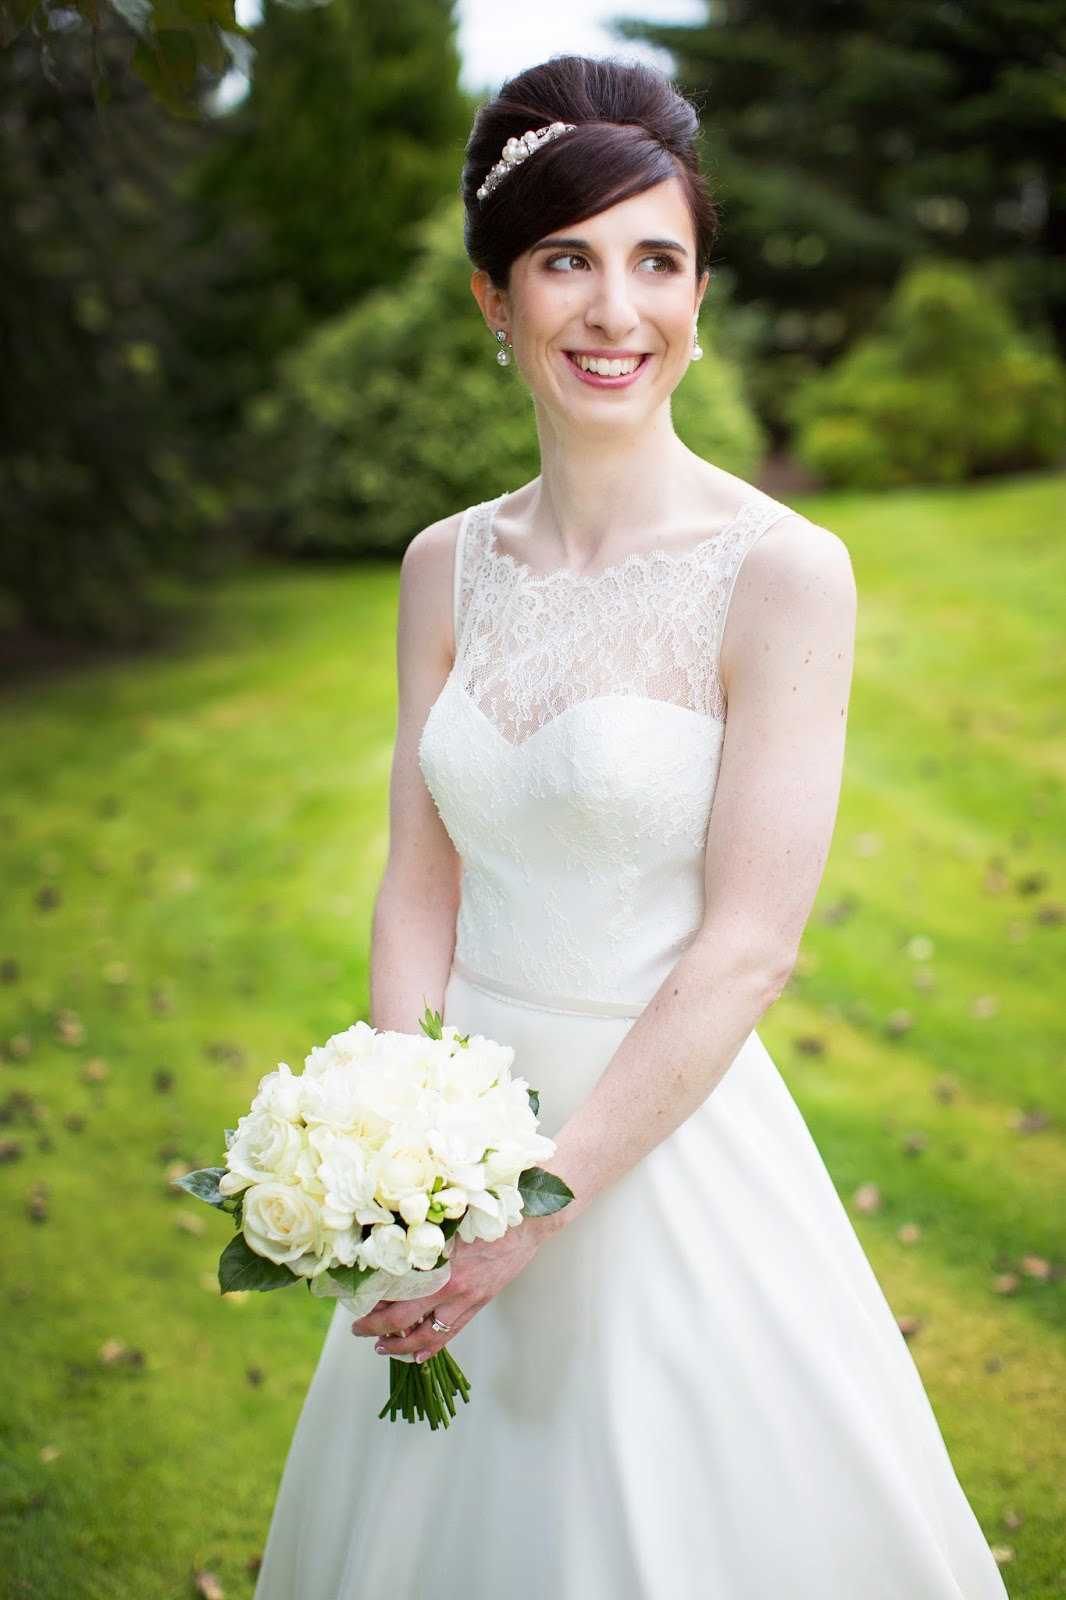 bride holding her bouquet smiling with her hair in a french roll accessorised with a jewelled band